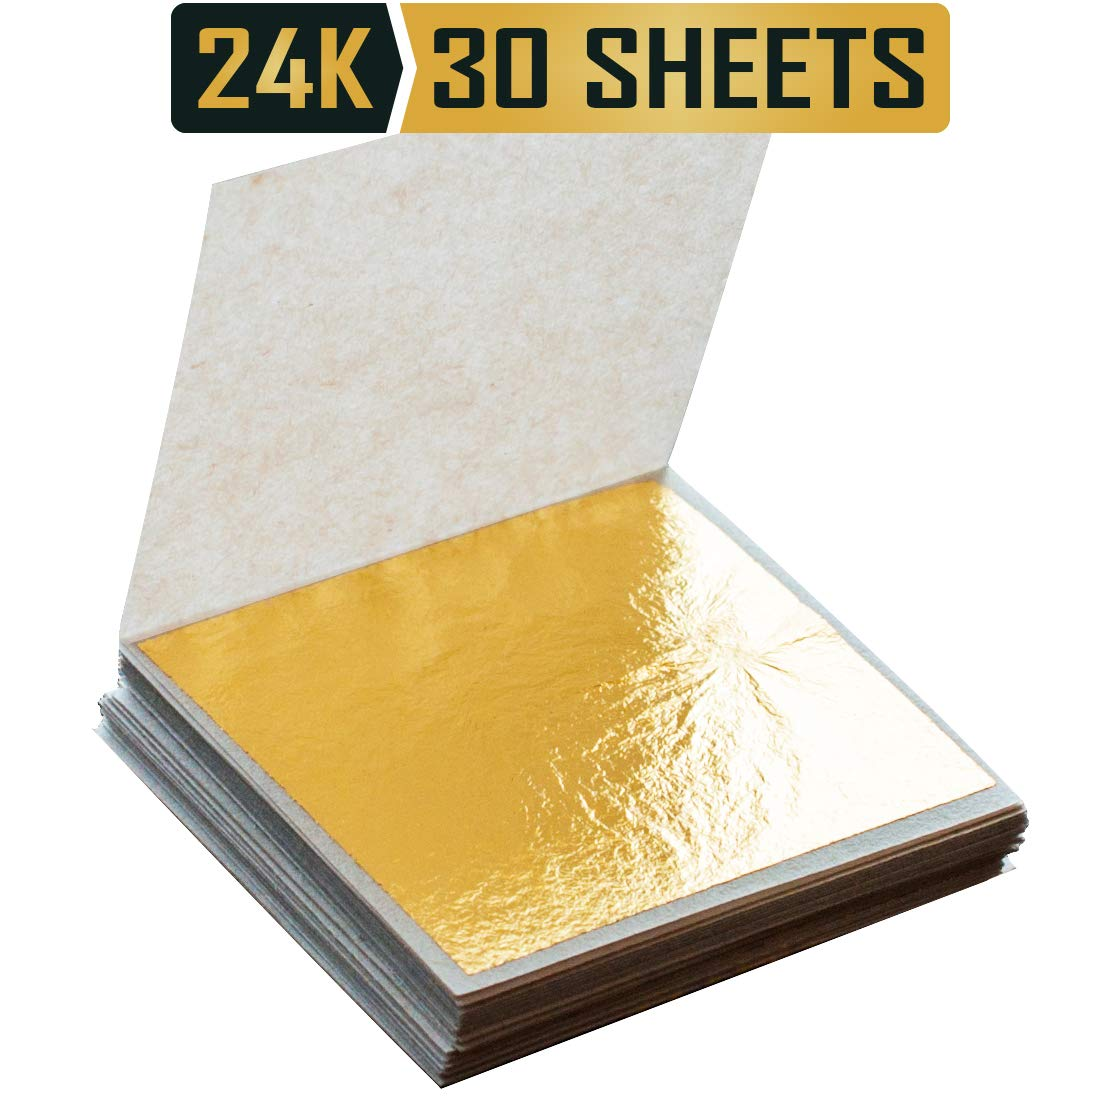 Premium Golden Yellow Edible 24k Gold Leaf Sheets 1.5''x1.5'' Made of 99.99% Real Gold Used in Beauty Routine and Makeup, Bakery and Pastry eg. Cake, Art Decoration for Art and Craft Work or Accessories